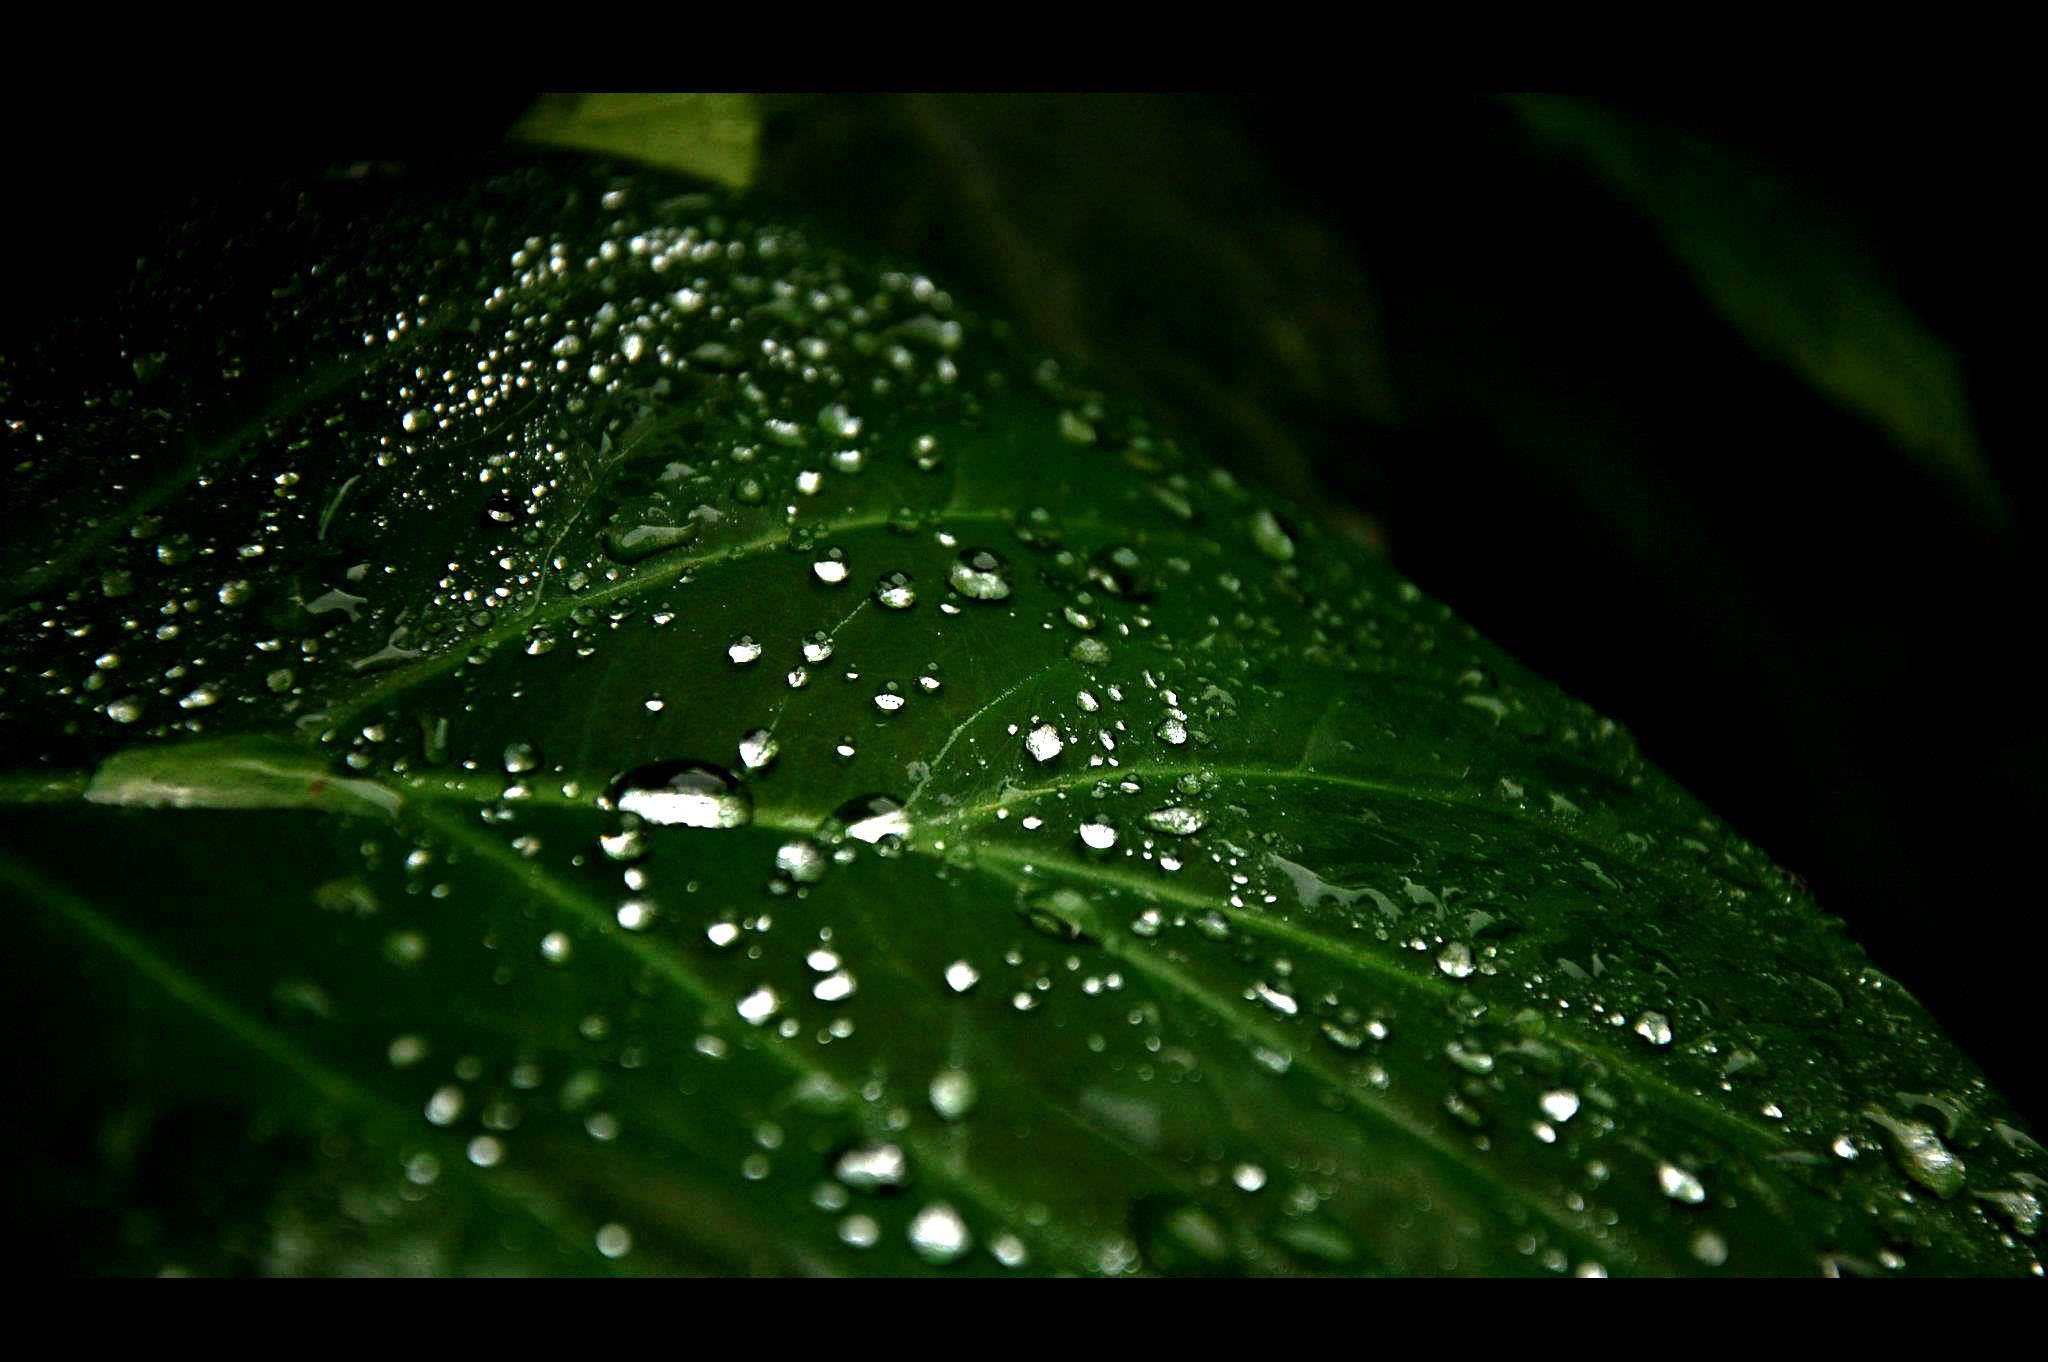 Photograph Every drop feels like heaven- nature's gift to mankind by Preetham Gurumurthy on 500px